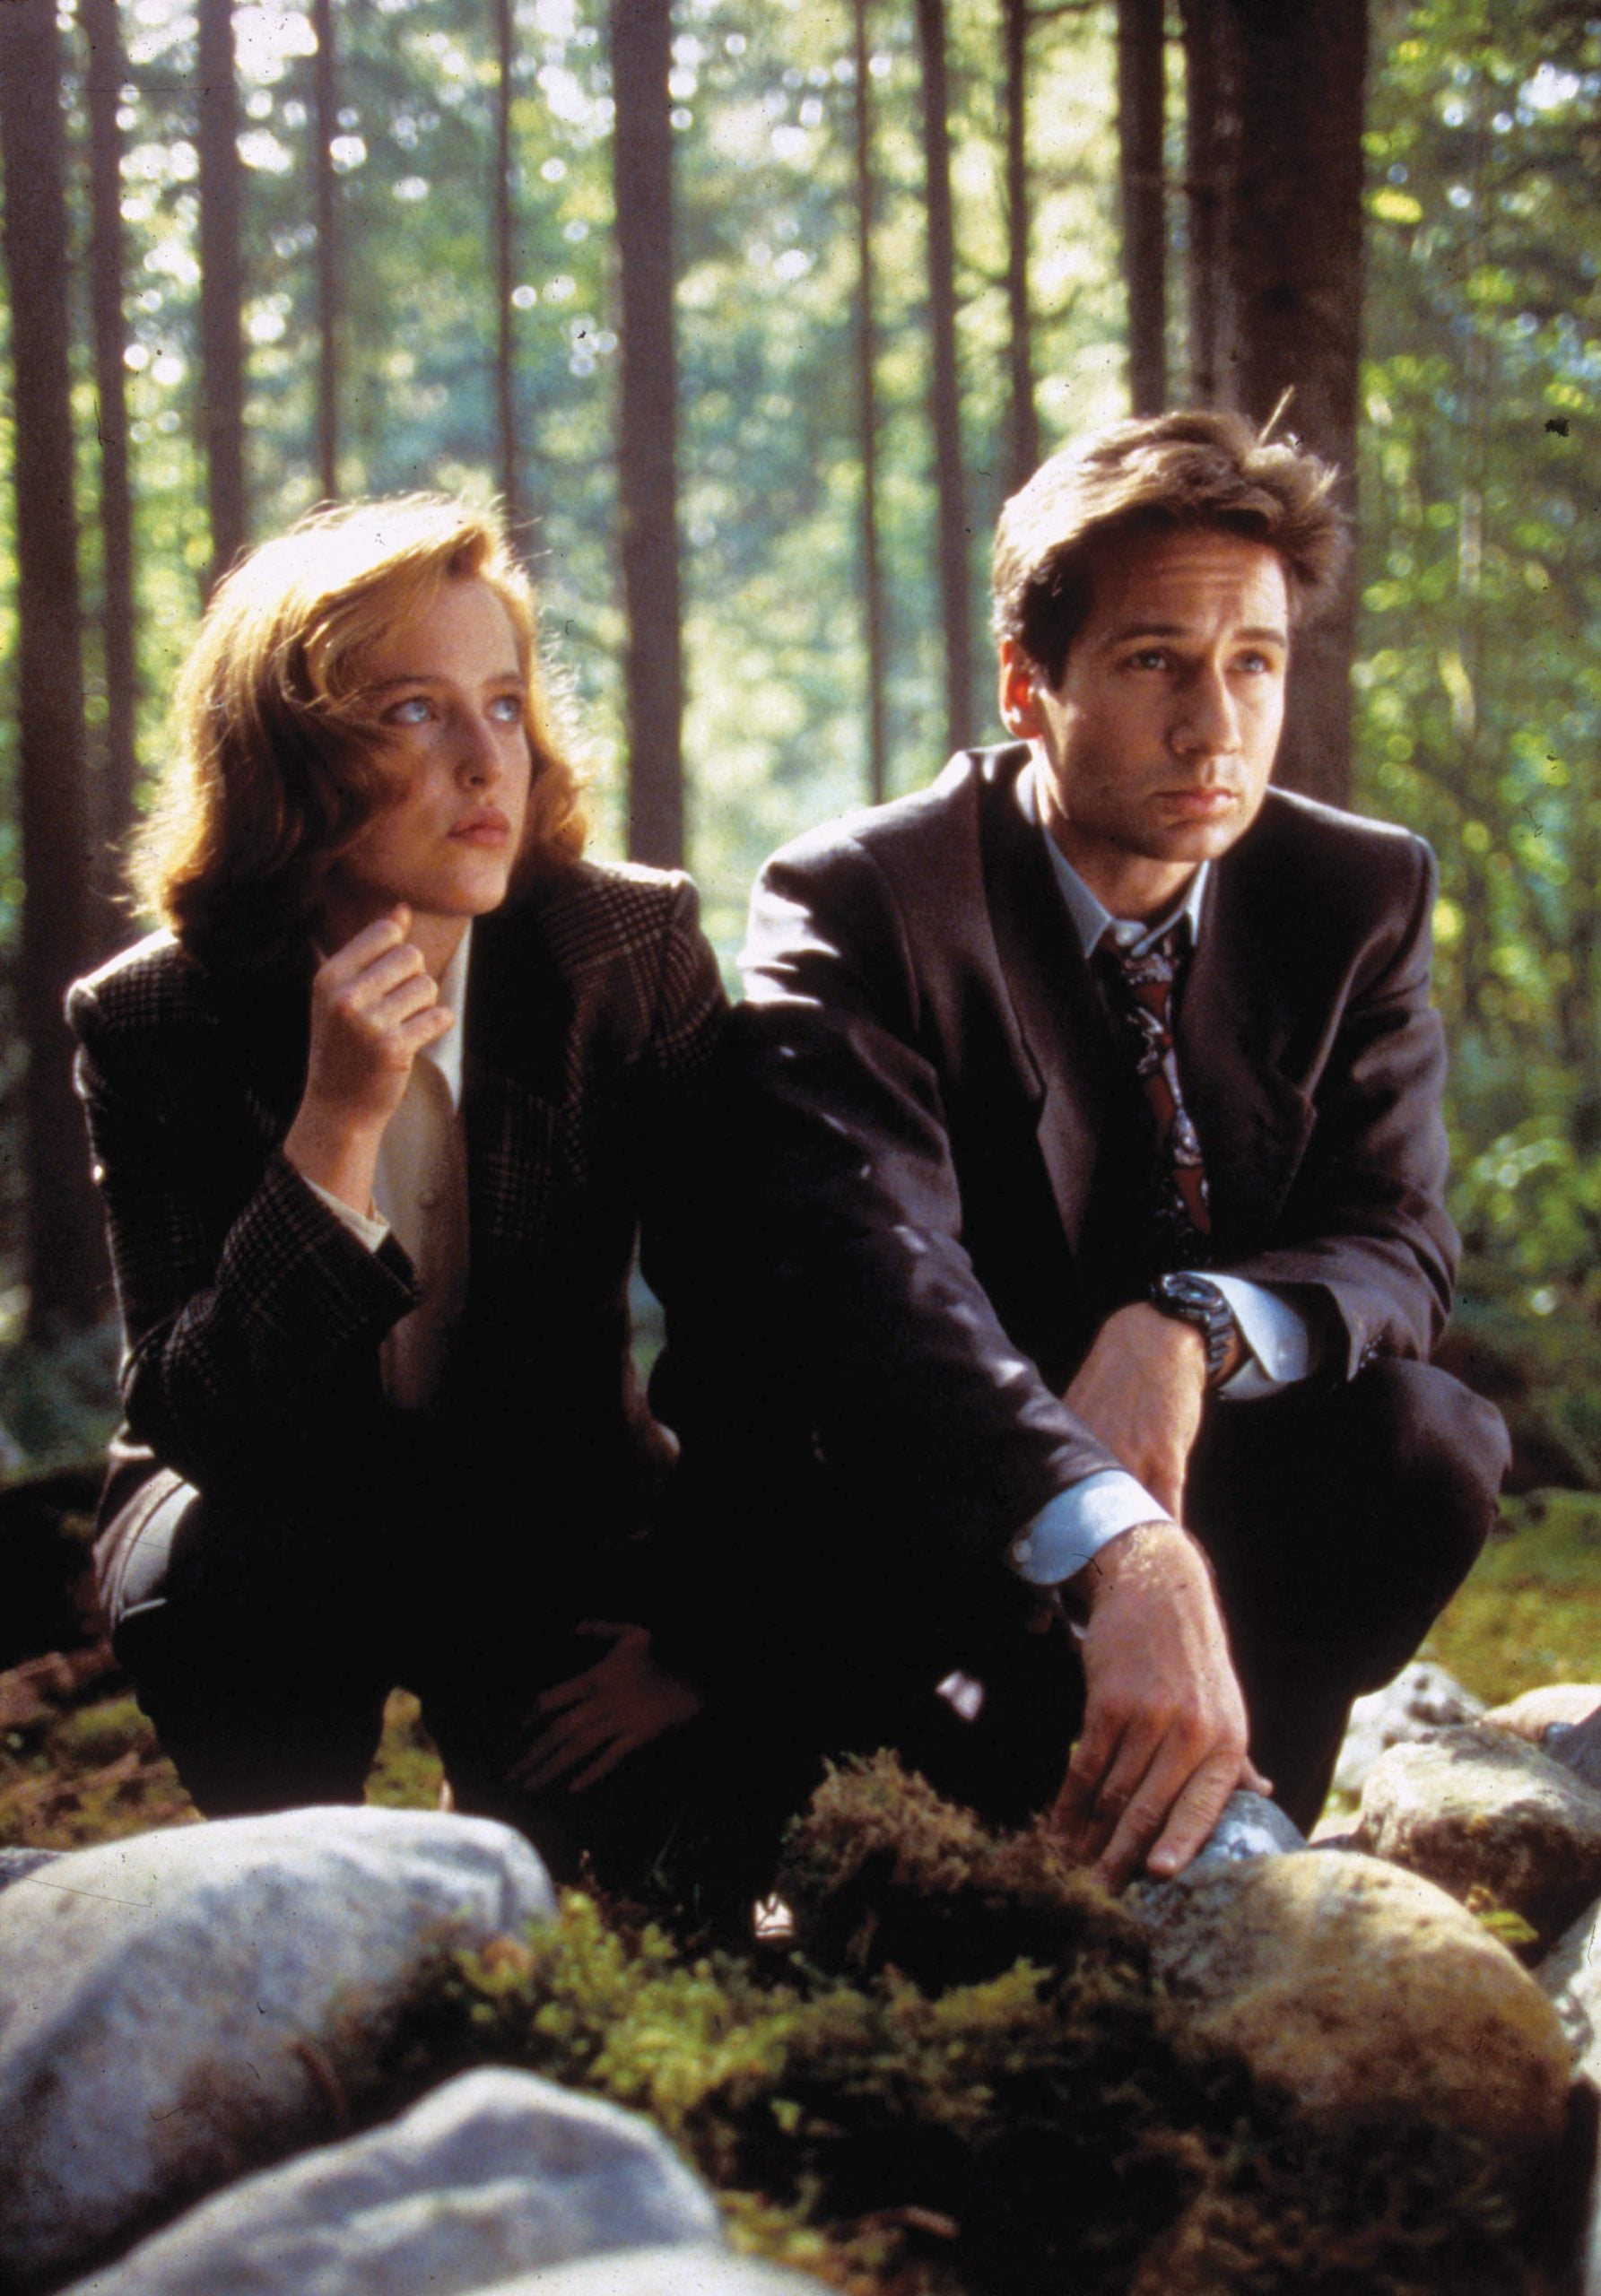 Can The X-Files exist in a post-9/11 world?